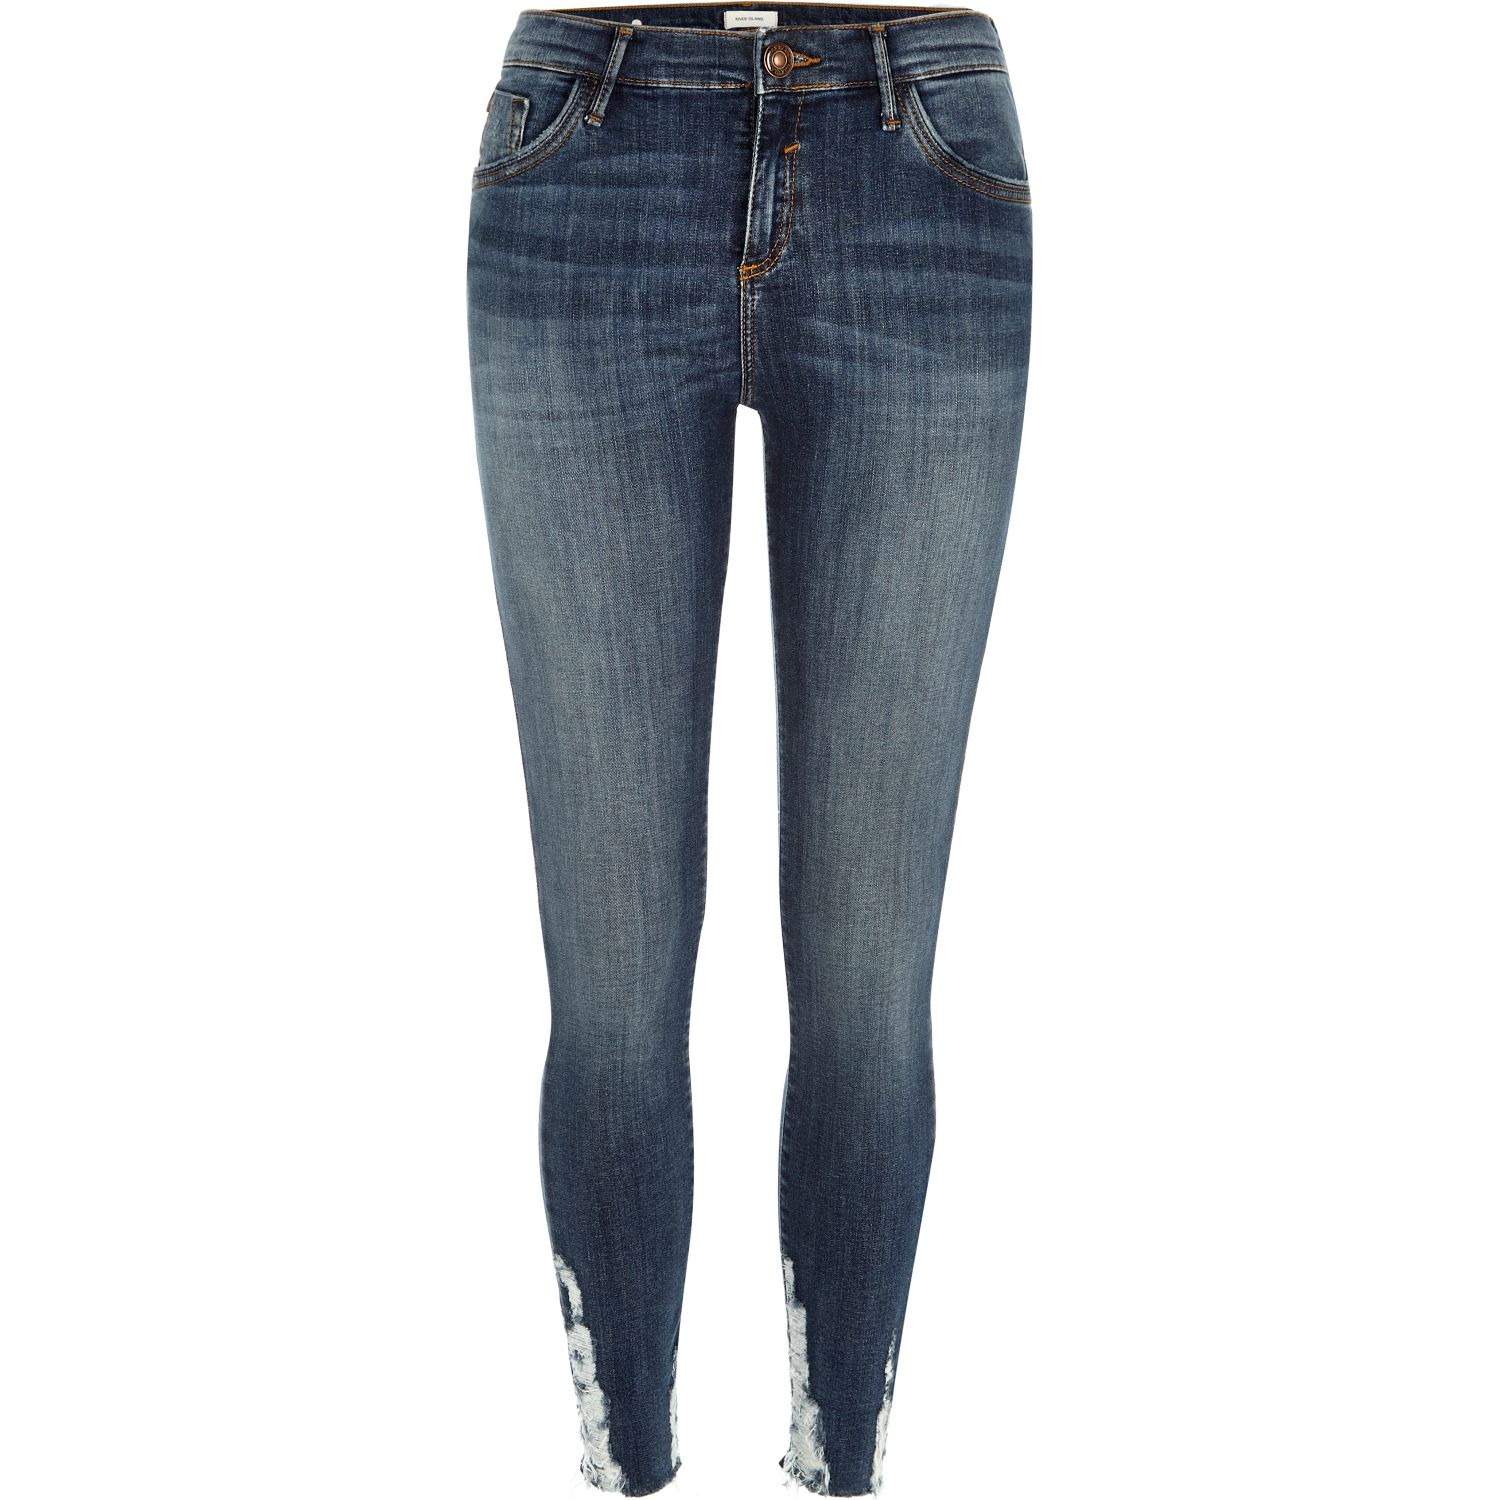 Jeans at Long Tall Sally. Since Jacob Davis and Levi Strauss created the first pair of blue jeans in , jeans have become the iconic piece that every woman needs in her wardrobe. Our #WeAreTallJeans campaign survey showed us that tall women lack choice of style on the market.